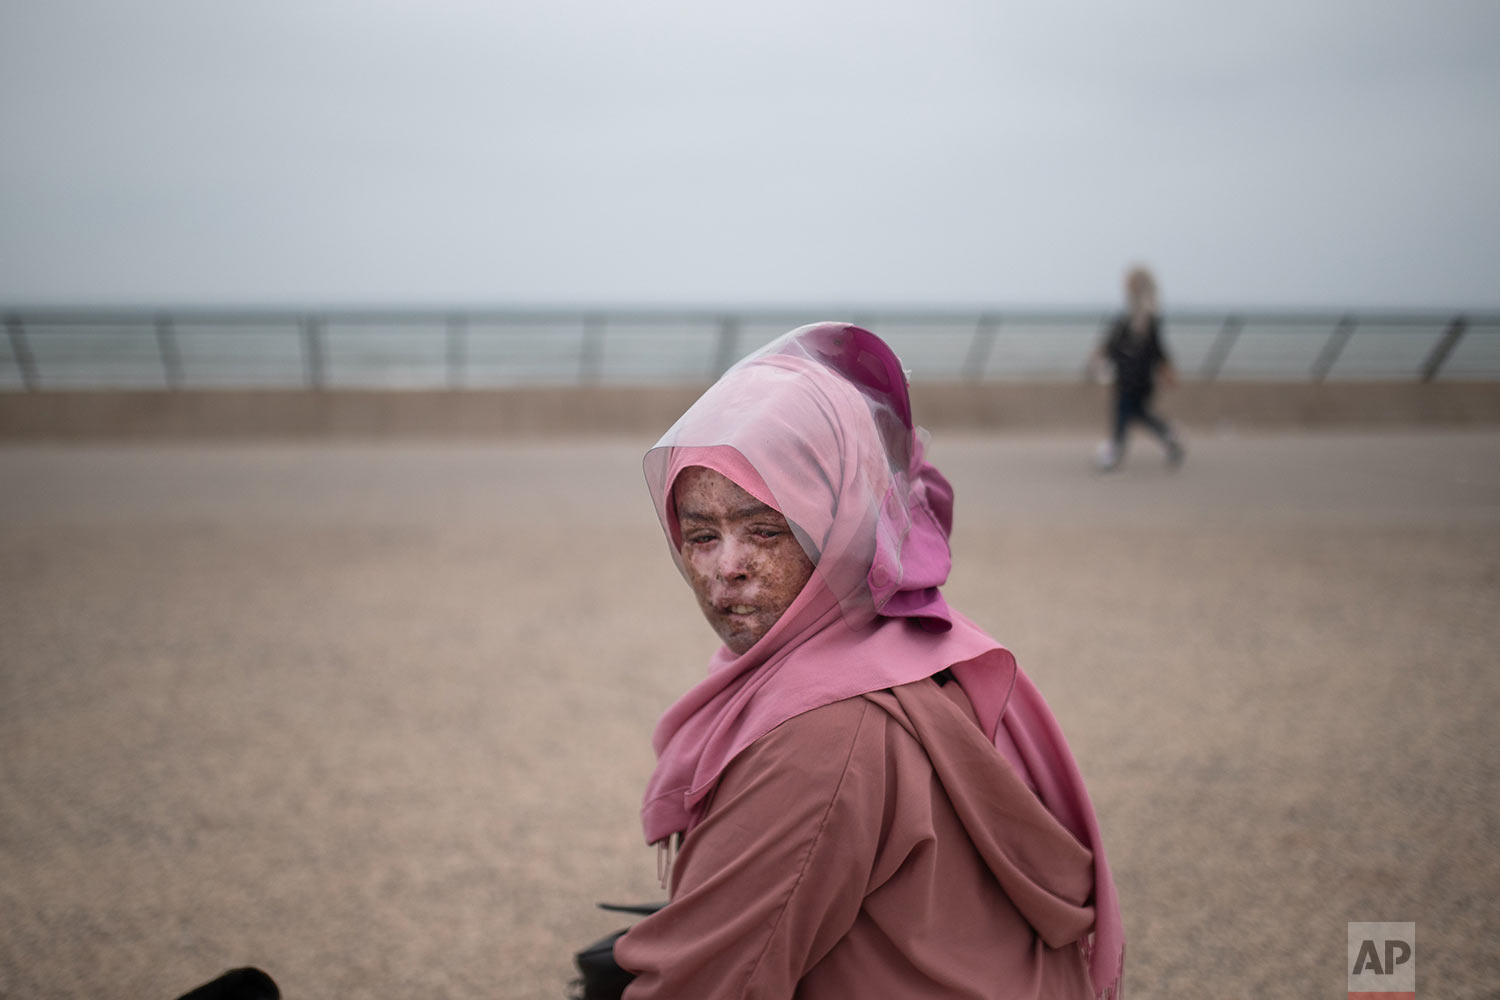 Fatimazehra Belloucy, 25, a woman affected by a rare disorder called xeroderma pigmentosum, or XP, poses for a portrait in Casablanca, Morocco, July 24, 2019. (AP Photo/Mosa'ab Elshamy)